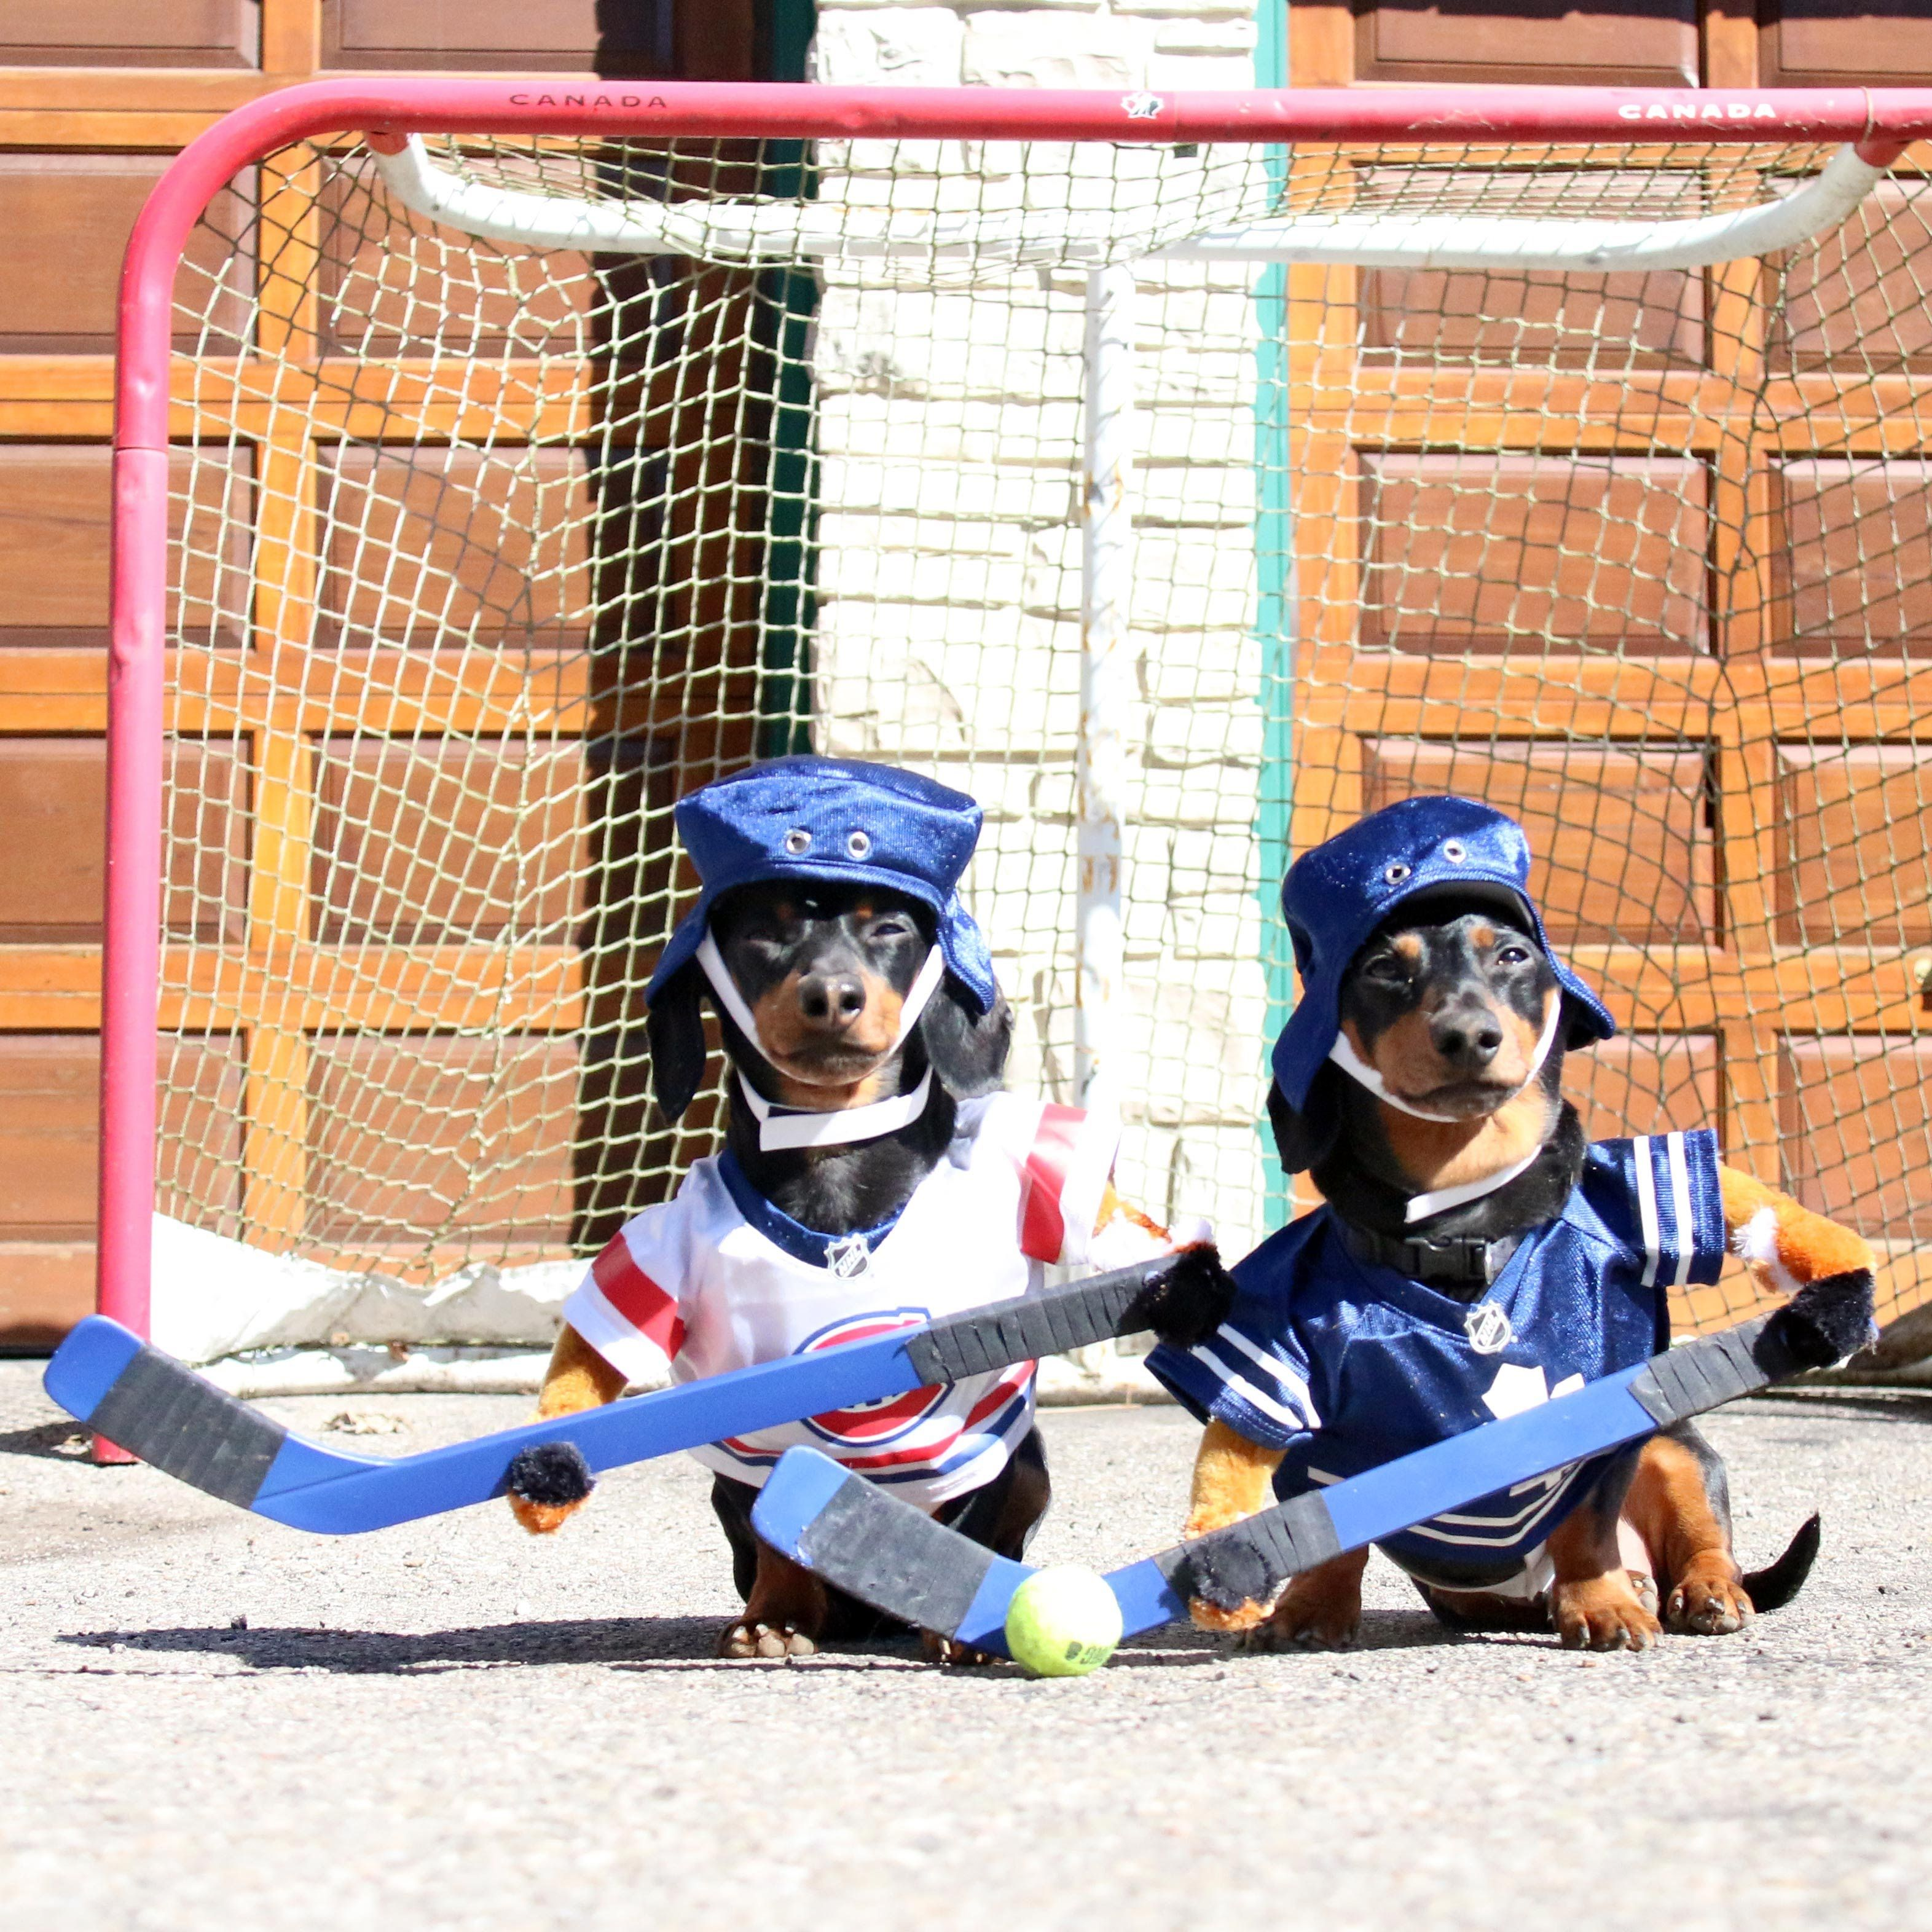 Crusoe Oakley Play Hockey In New Viral Video Dachshunds Join The Fan Club On Facebook Facebook C Crusoe The Celebrity Dachshund Dachshund Funny Dachshund